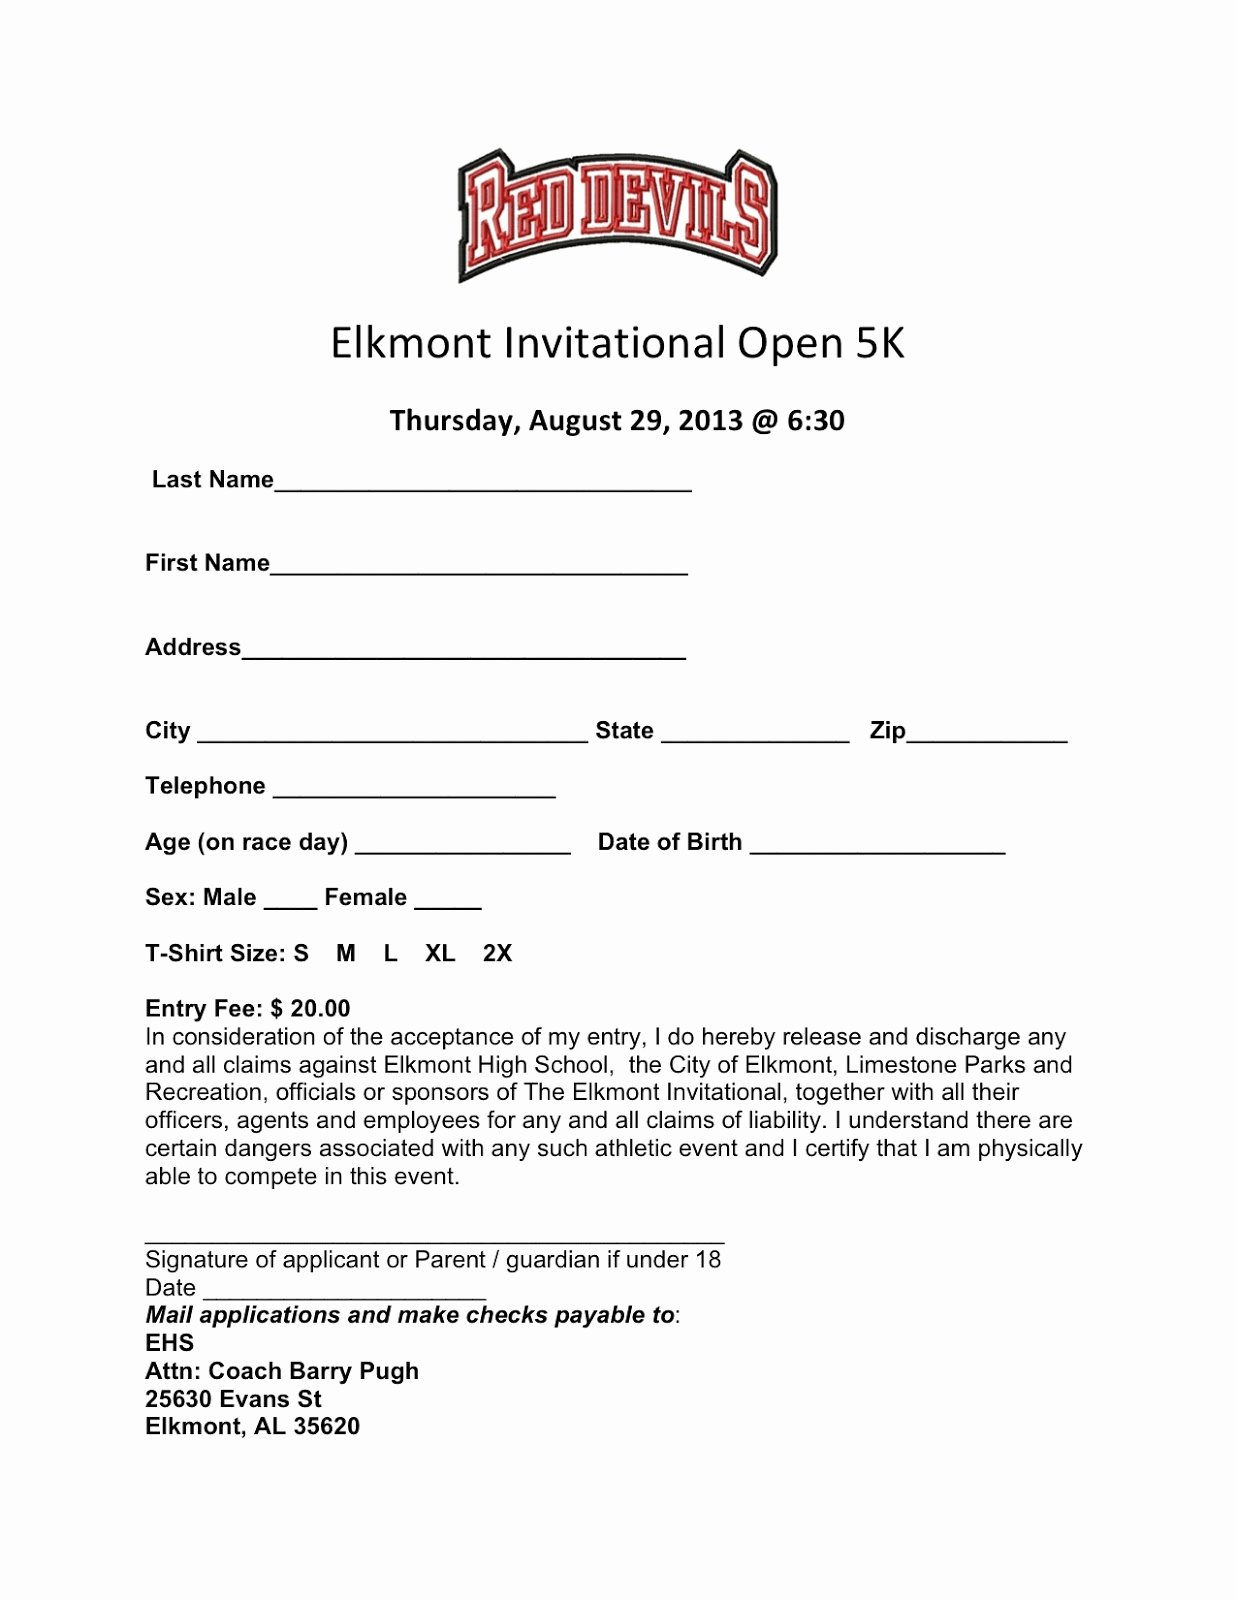 5k Registration form Template Beautiful Elkmont Alabama Elkmont Open 5k Run Runners Unite